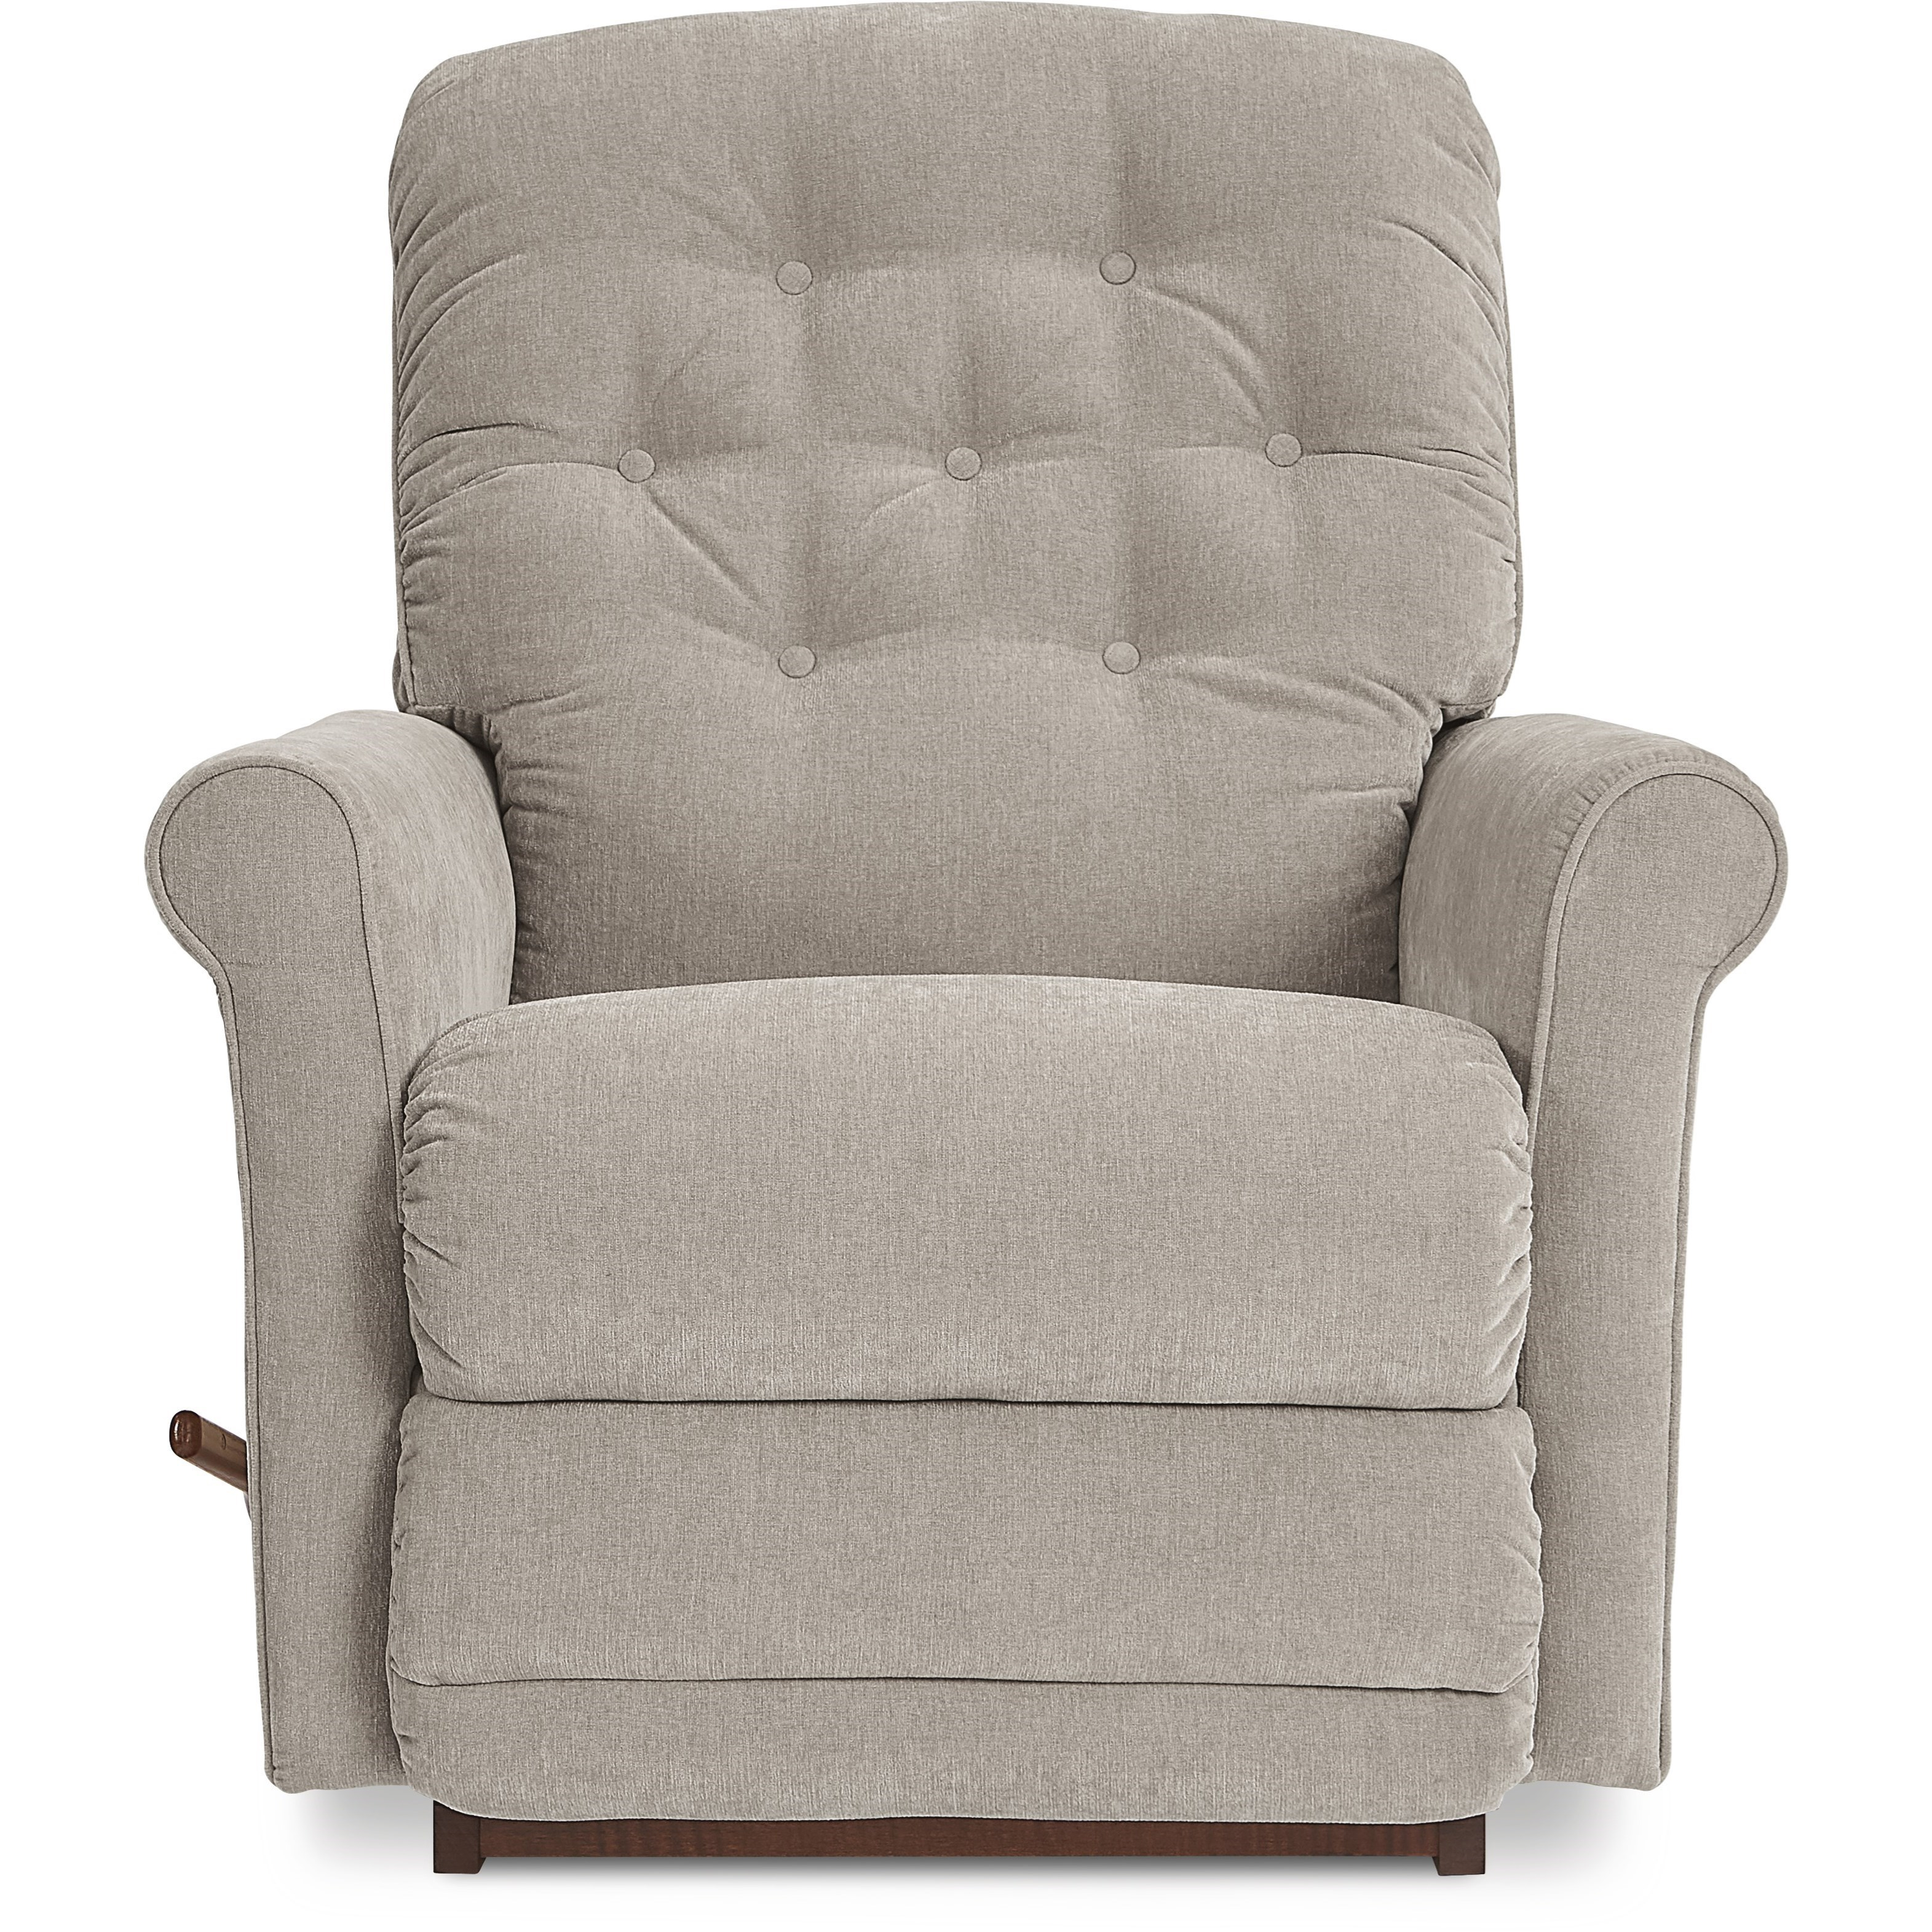 Ruby Power Rocking Recliner by La-Z-Boy at Sparks HomeStore